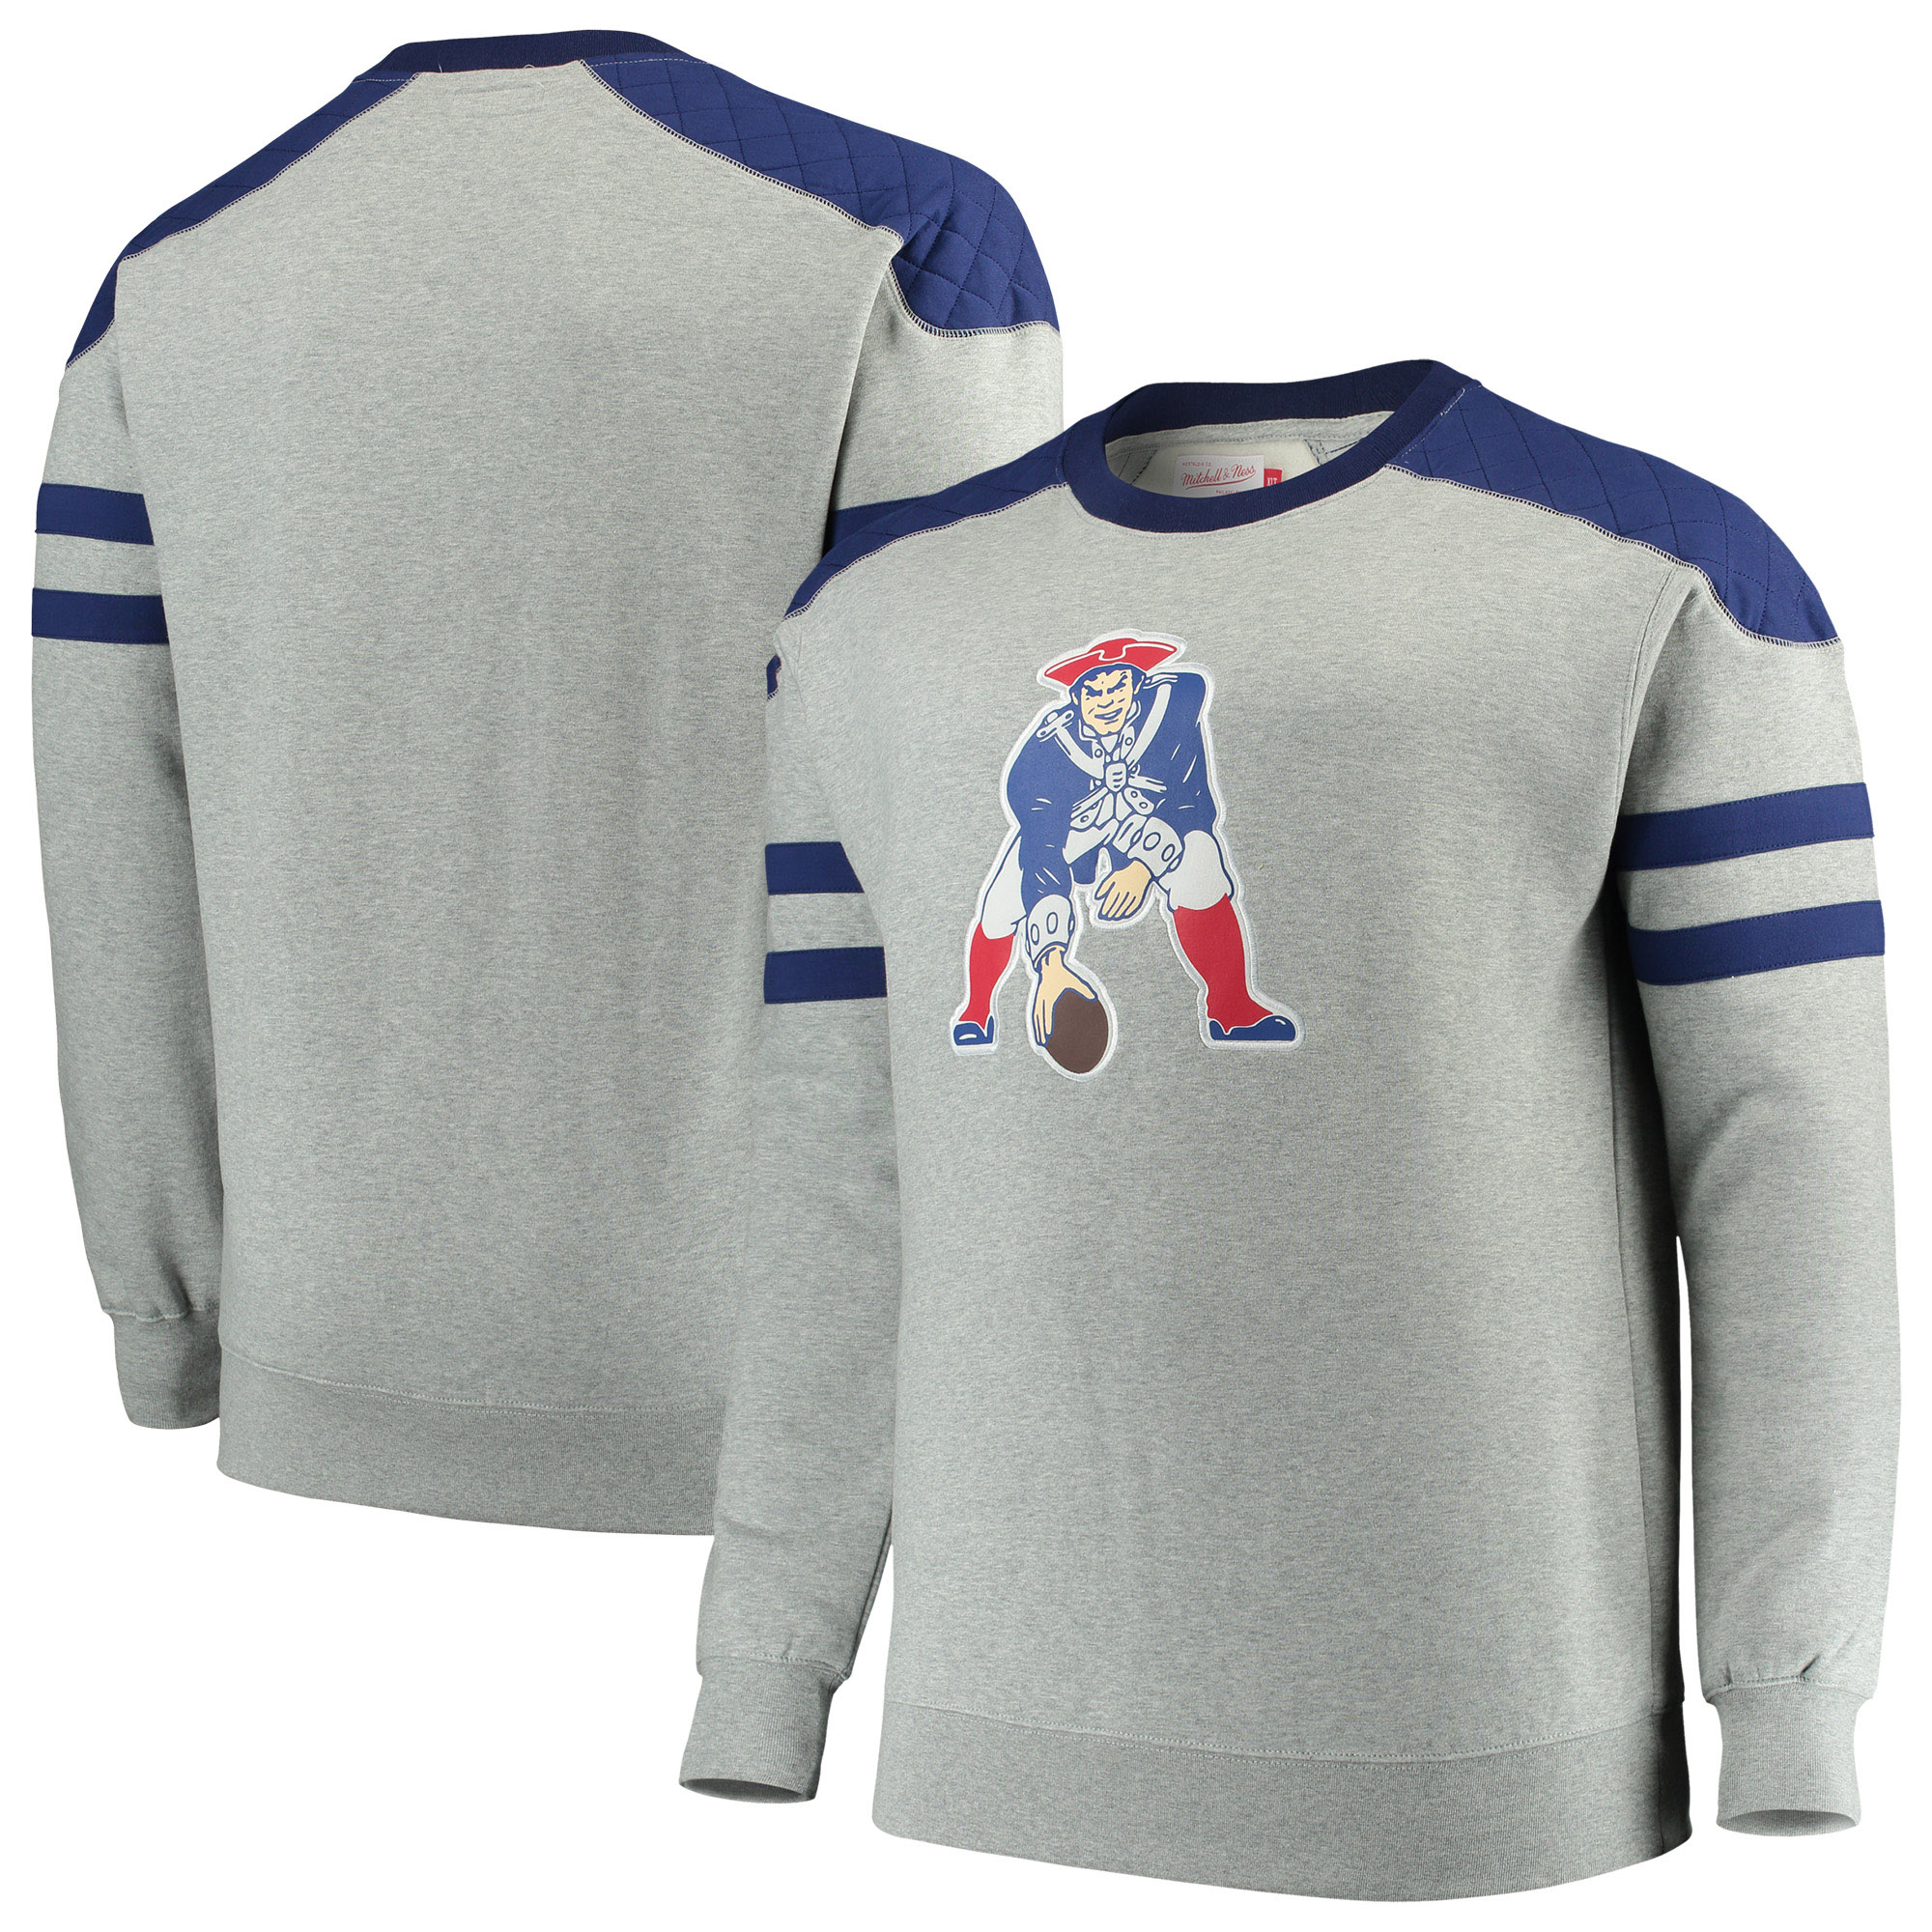 Mens Navy New England Patriots Cut And Sew Crew Neck Sweatshirt